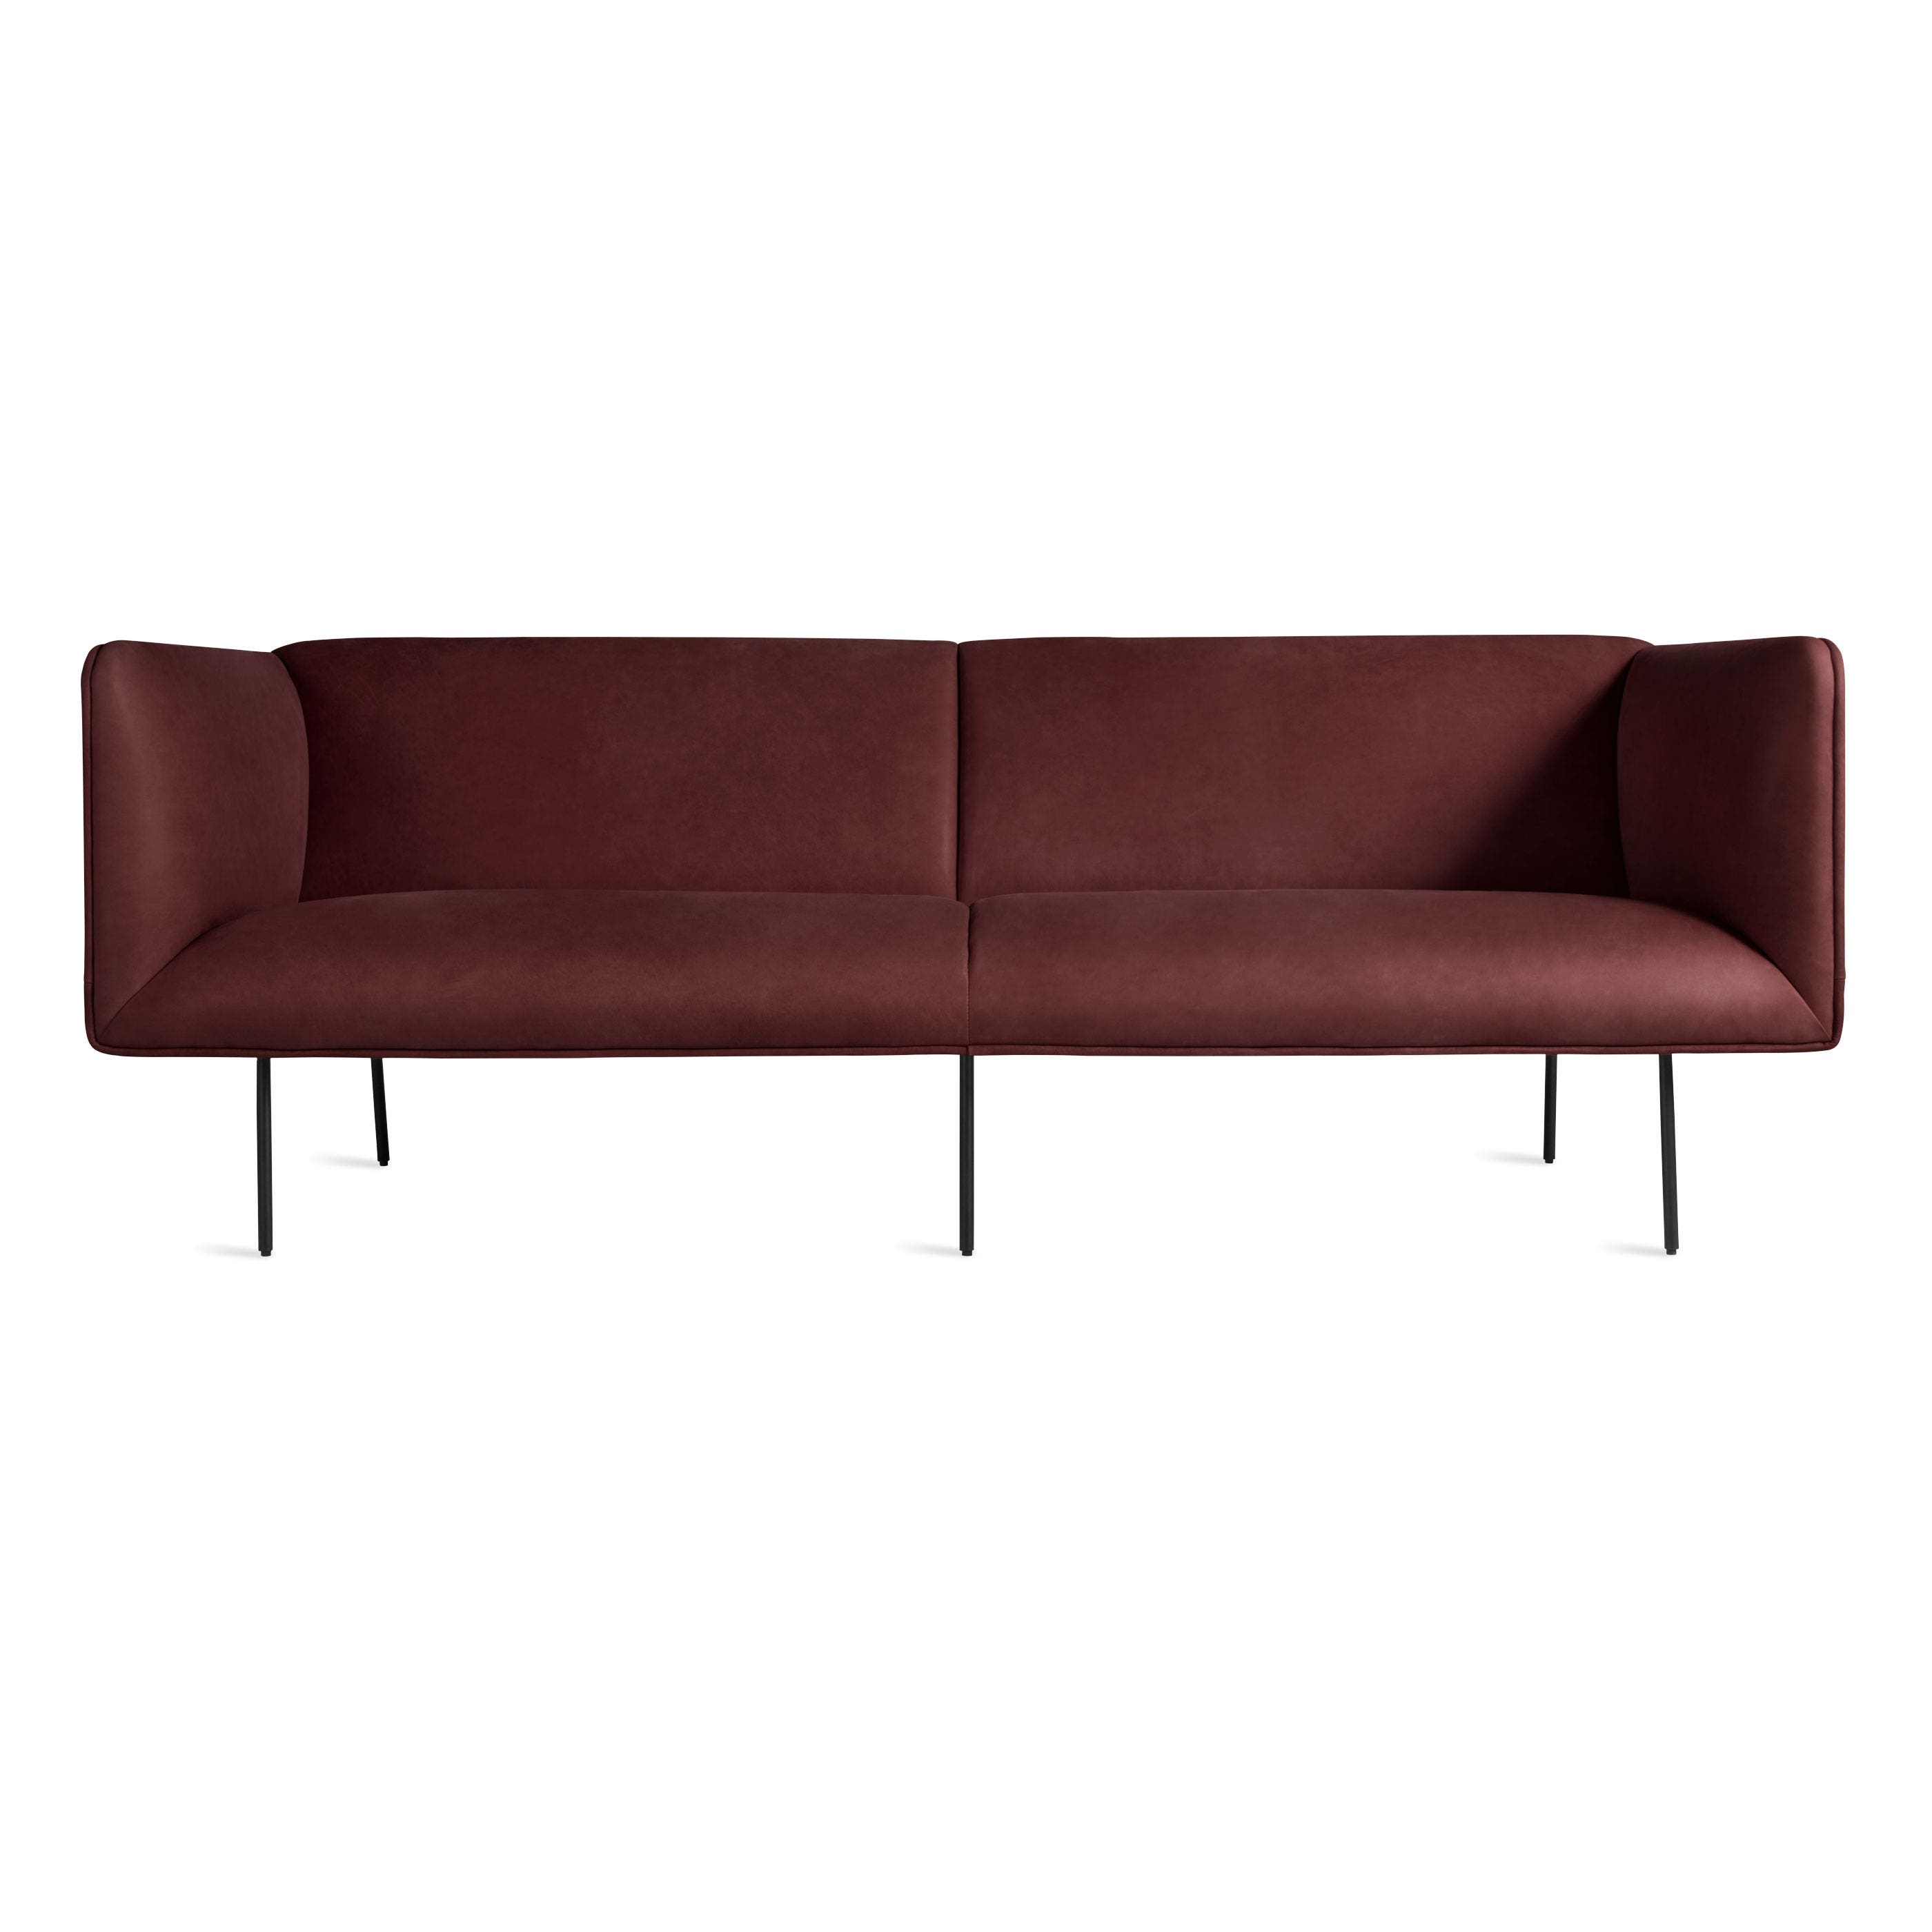 "Dandy 96"" Leather Sofa Modern Fabric Sofa"